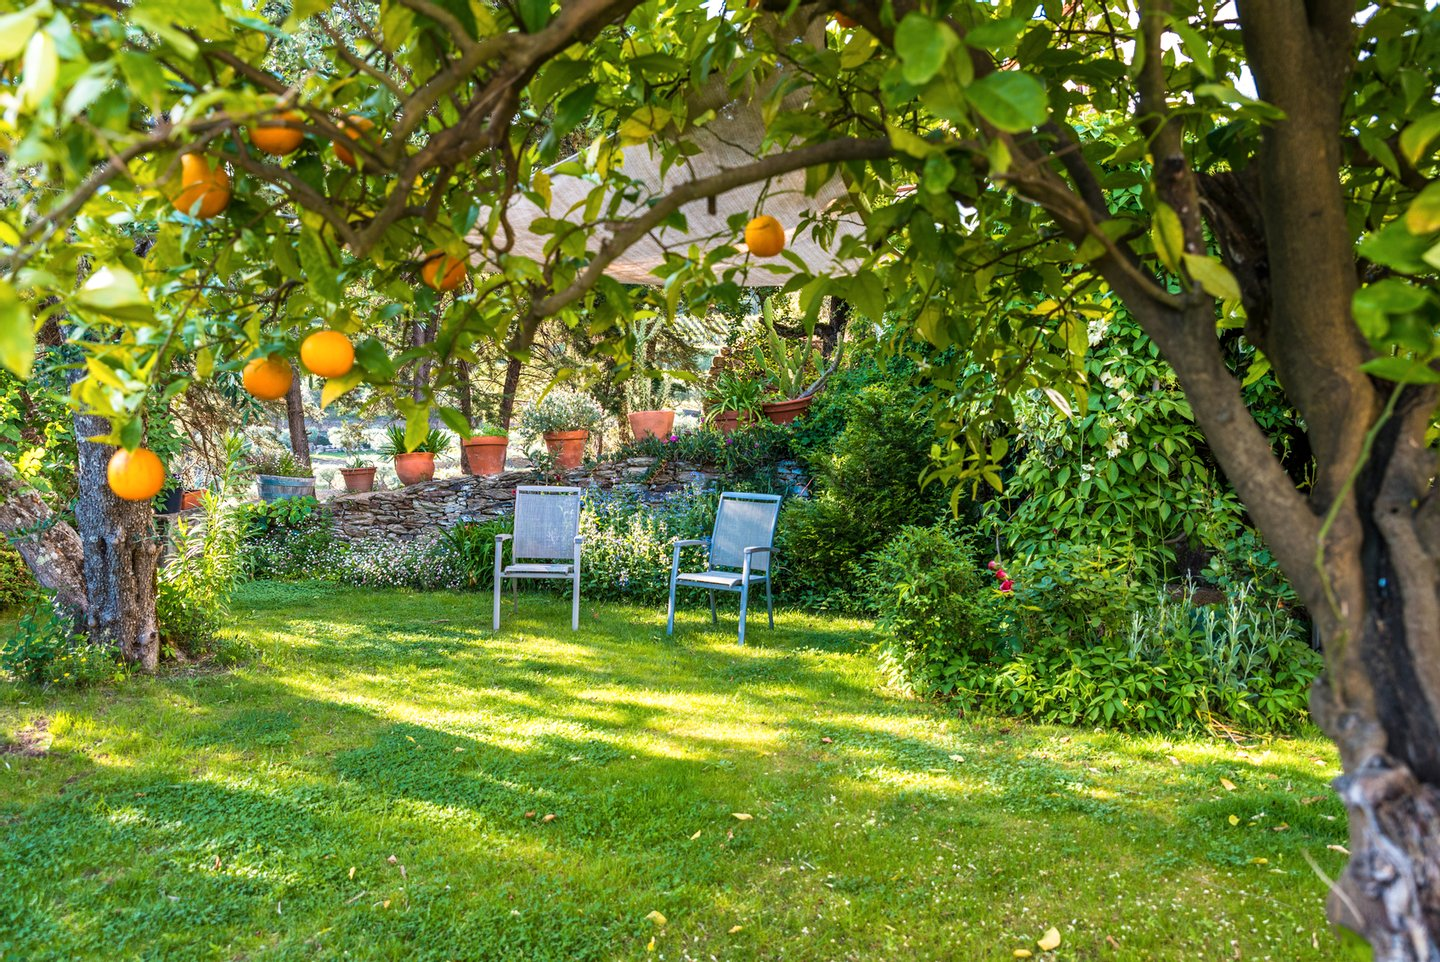 Beautiful, Ornamental Garden, Serene People, Single Flower, Residential Building, Leisure Activity, No People, Environmental Conservation, Seat, Comfortable, Beauty In Nature, Vegetable Garden, Grass, Gardening, Flowerbed, Beauty, Idyllic, Relaxation, Tranquil Scene, Orange Color, Green Color, Wood - Material, Pattern, Nature, Lifestyles, Outdoors, Recreational Pursuit, Orange - Fruit, Tree, Flower, Day, Summer, Springtime, Terraced Field, Balcony, Patio, House, Home Interior, Formal Garden, Design, Decor, Table, Chair, Furniture, friuts,